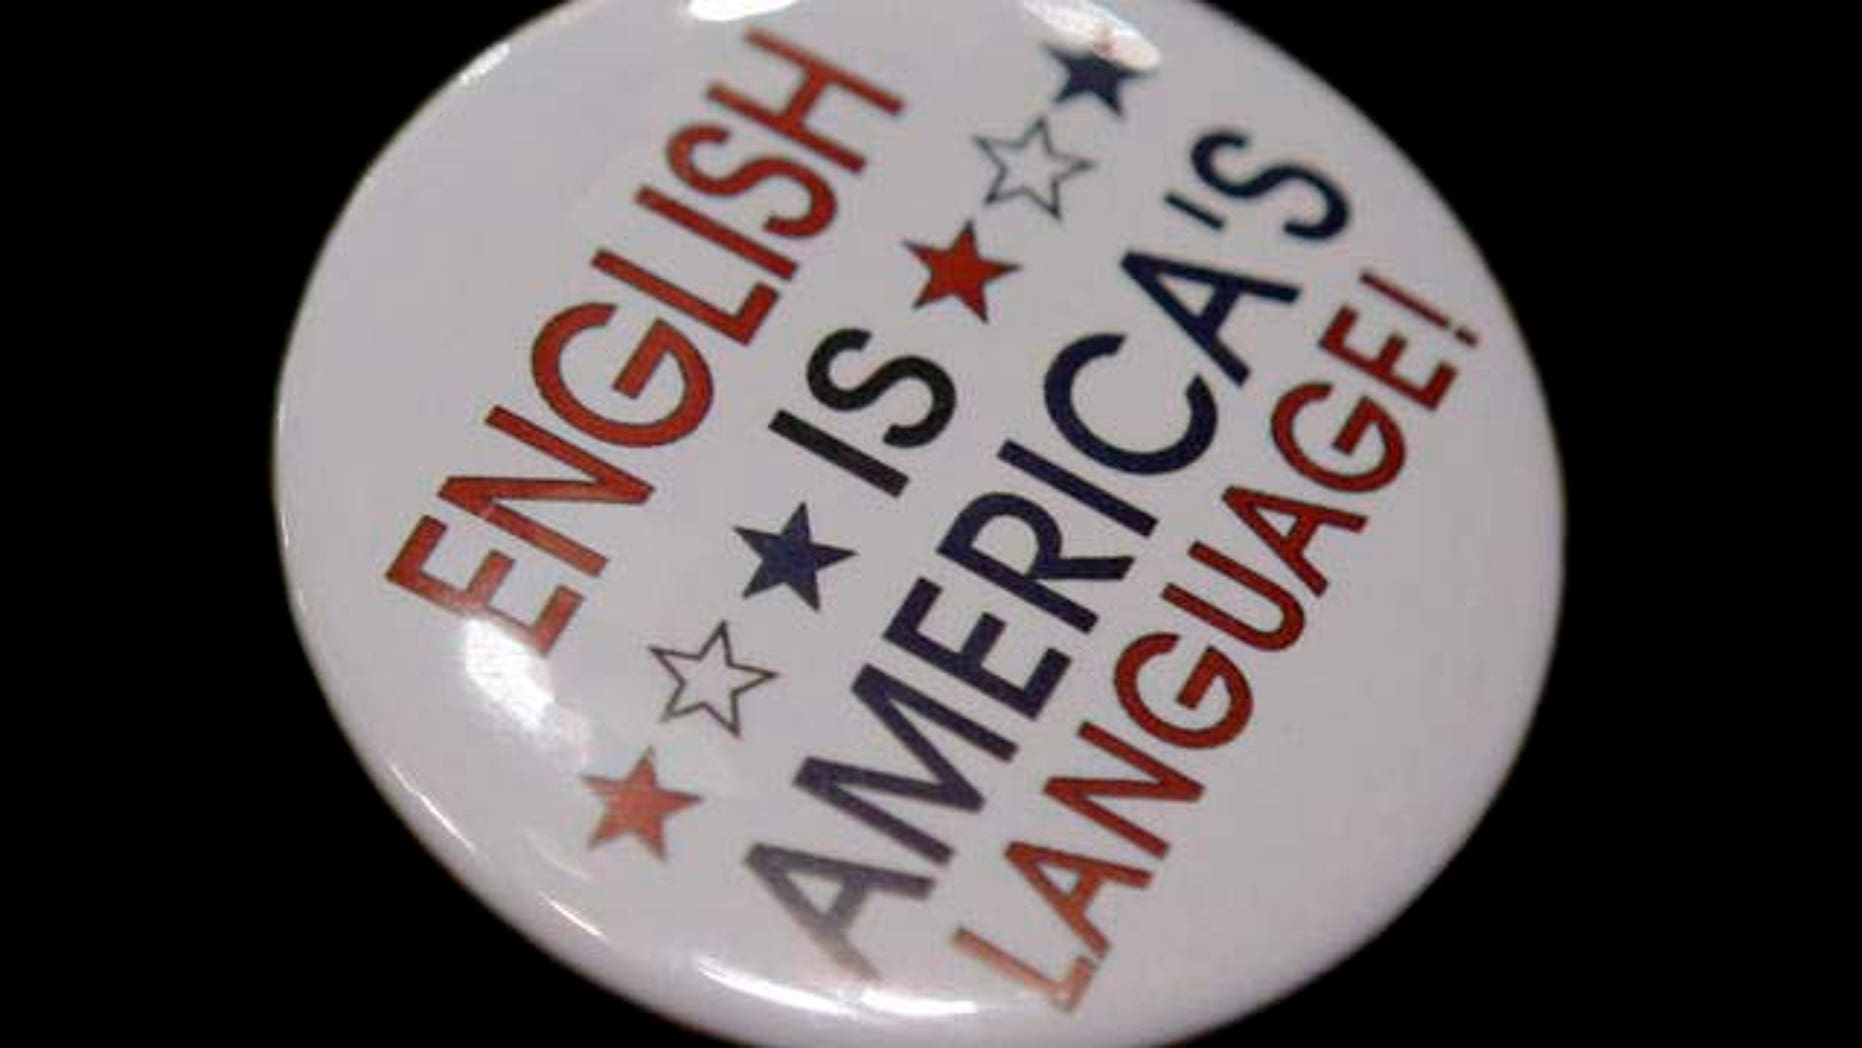 Pins supporting the republican party are seen on a delegate during the opening session of the Republican National Convention in St. Paul, Minn., Monday, Sept. 1, 2008. (AP Photo/Jae C. Hong)